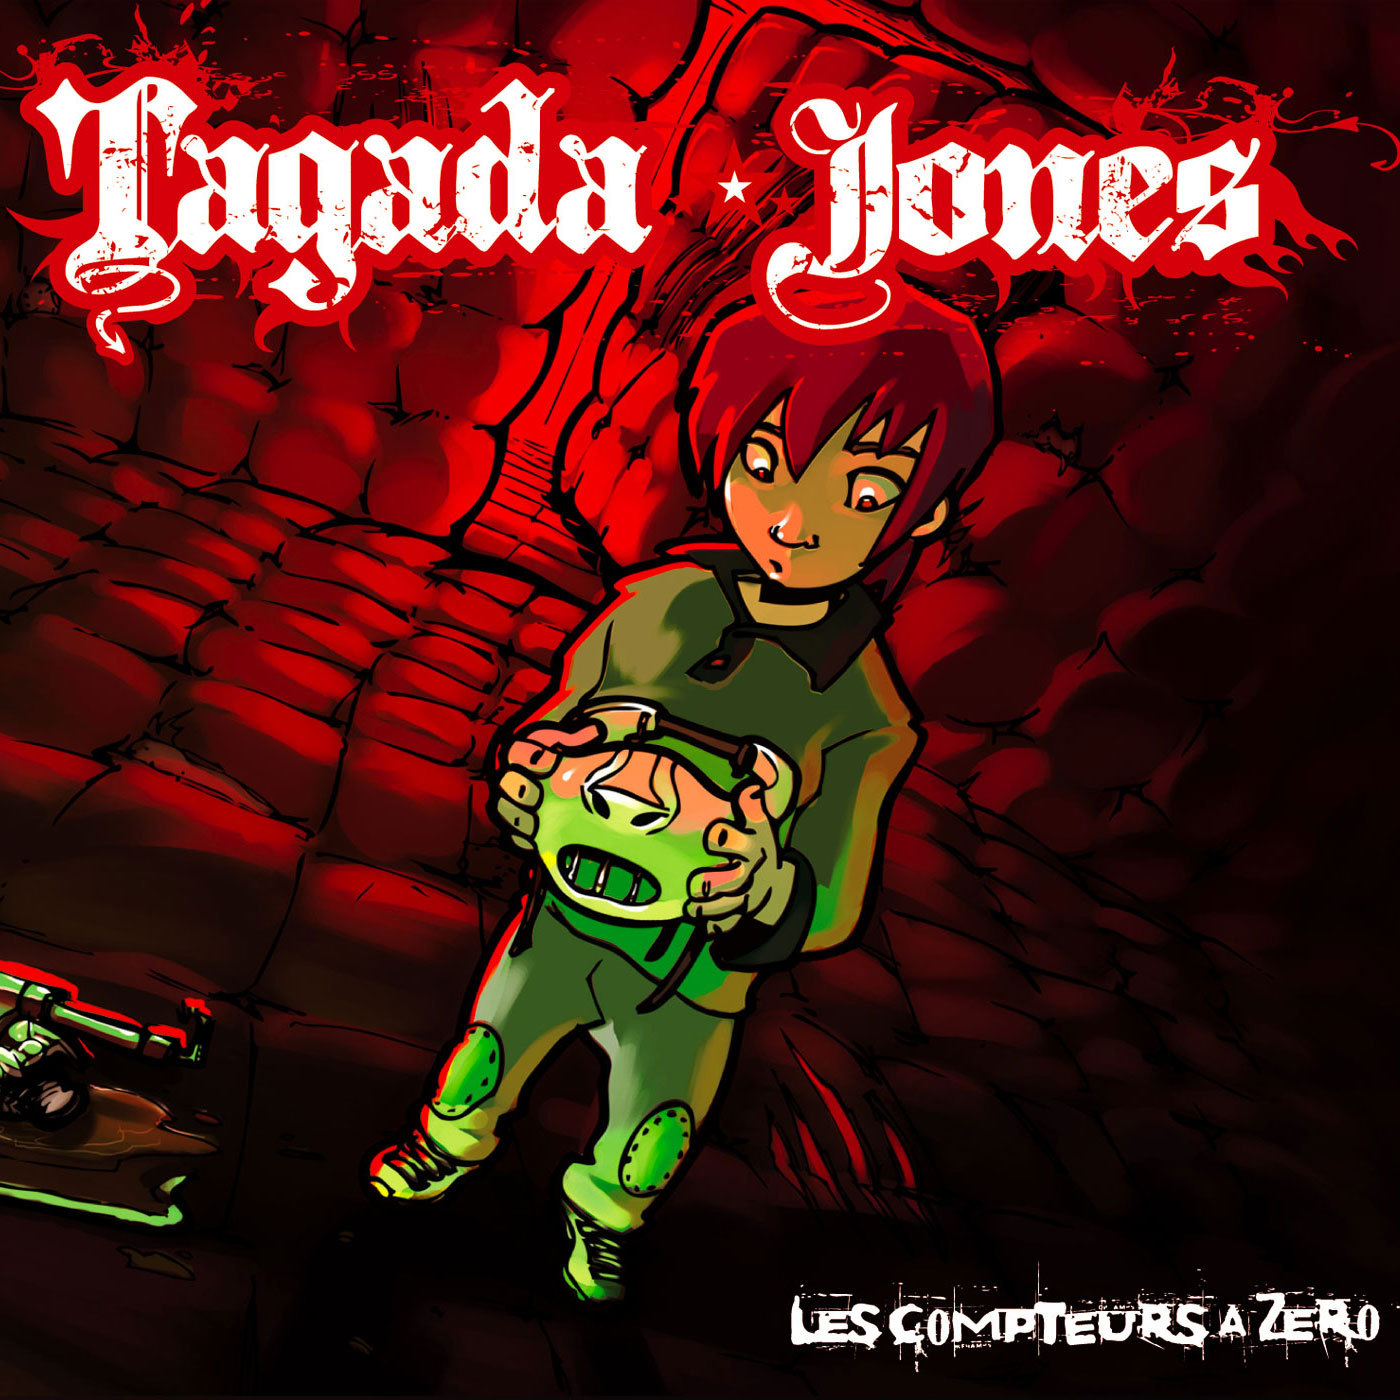 Tagada Jones - Les Compteurs A Zero